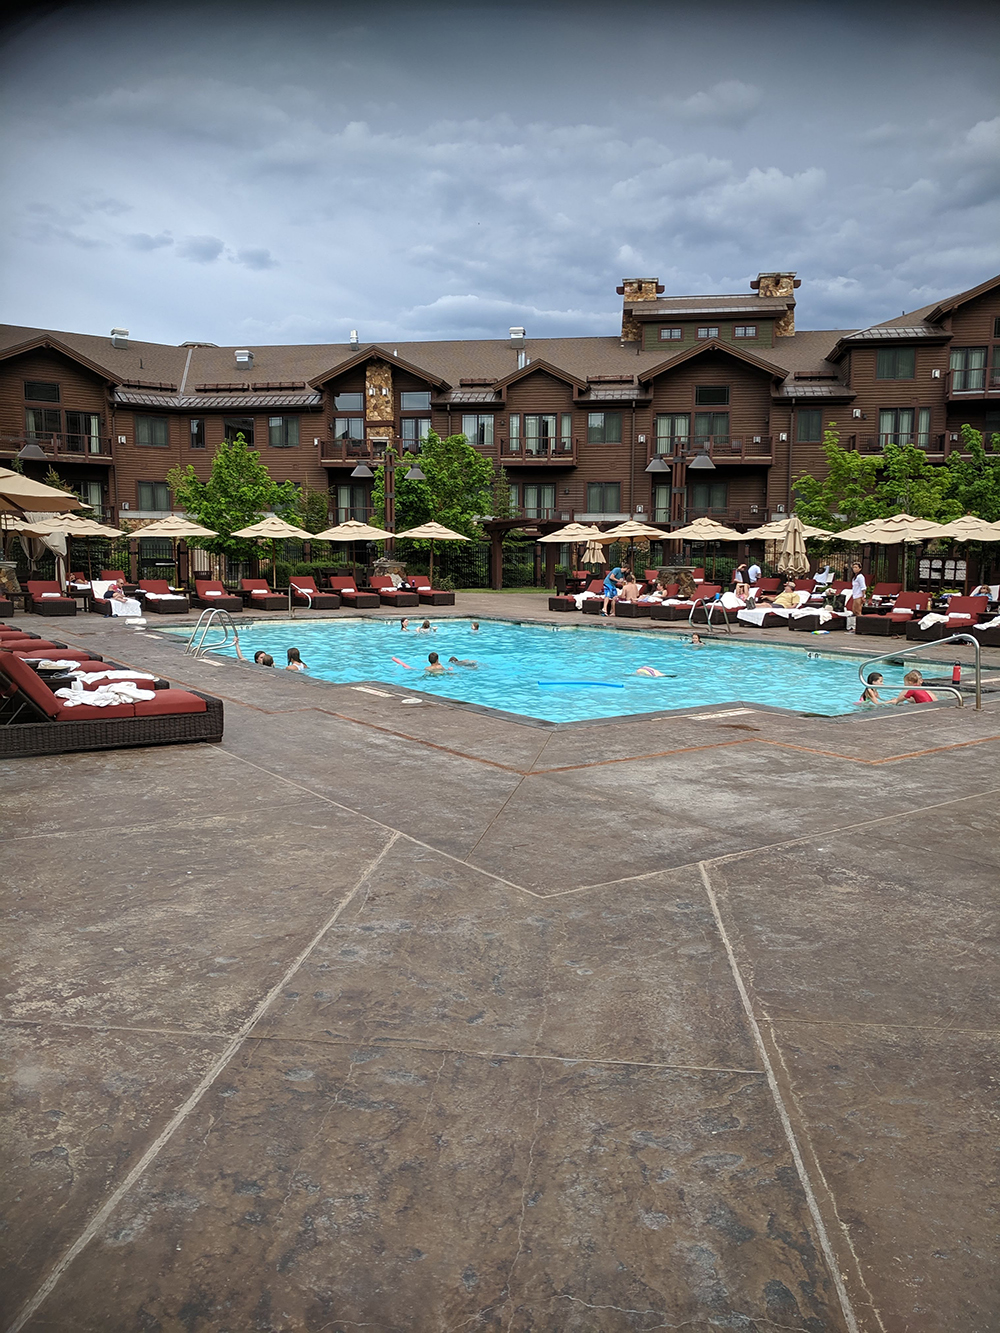 The outdoor pool is the perfect place to relax, soak up some rays, and breathe in the fresh mountain air.